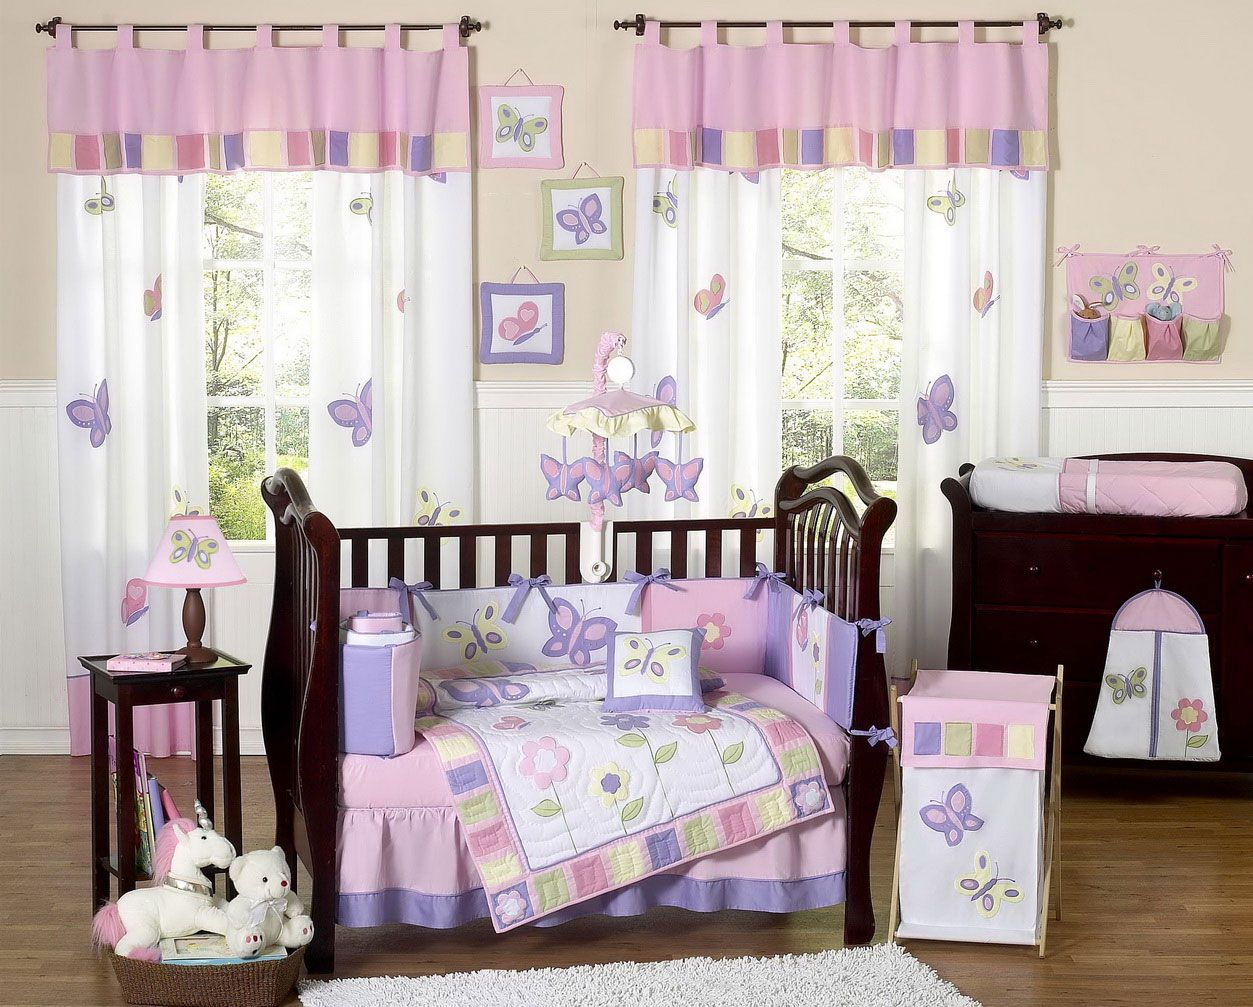 Lovely Modern Nursery Baby Girl Room with Wooden Crib and ...